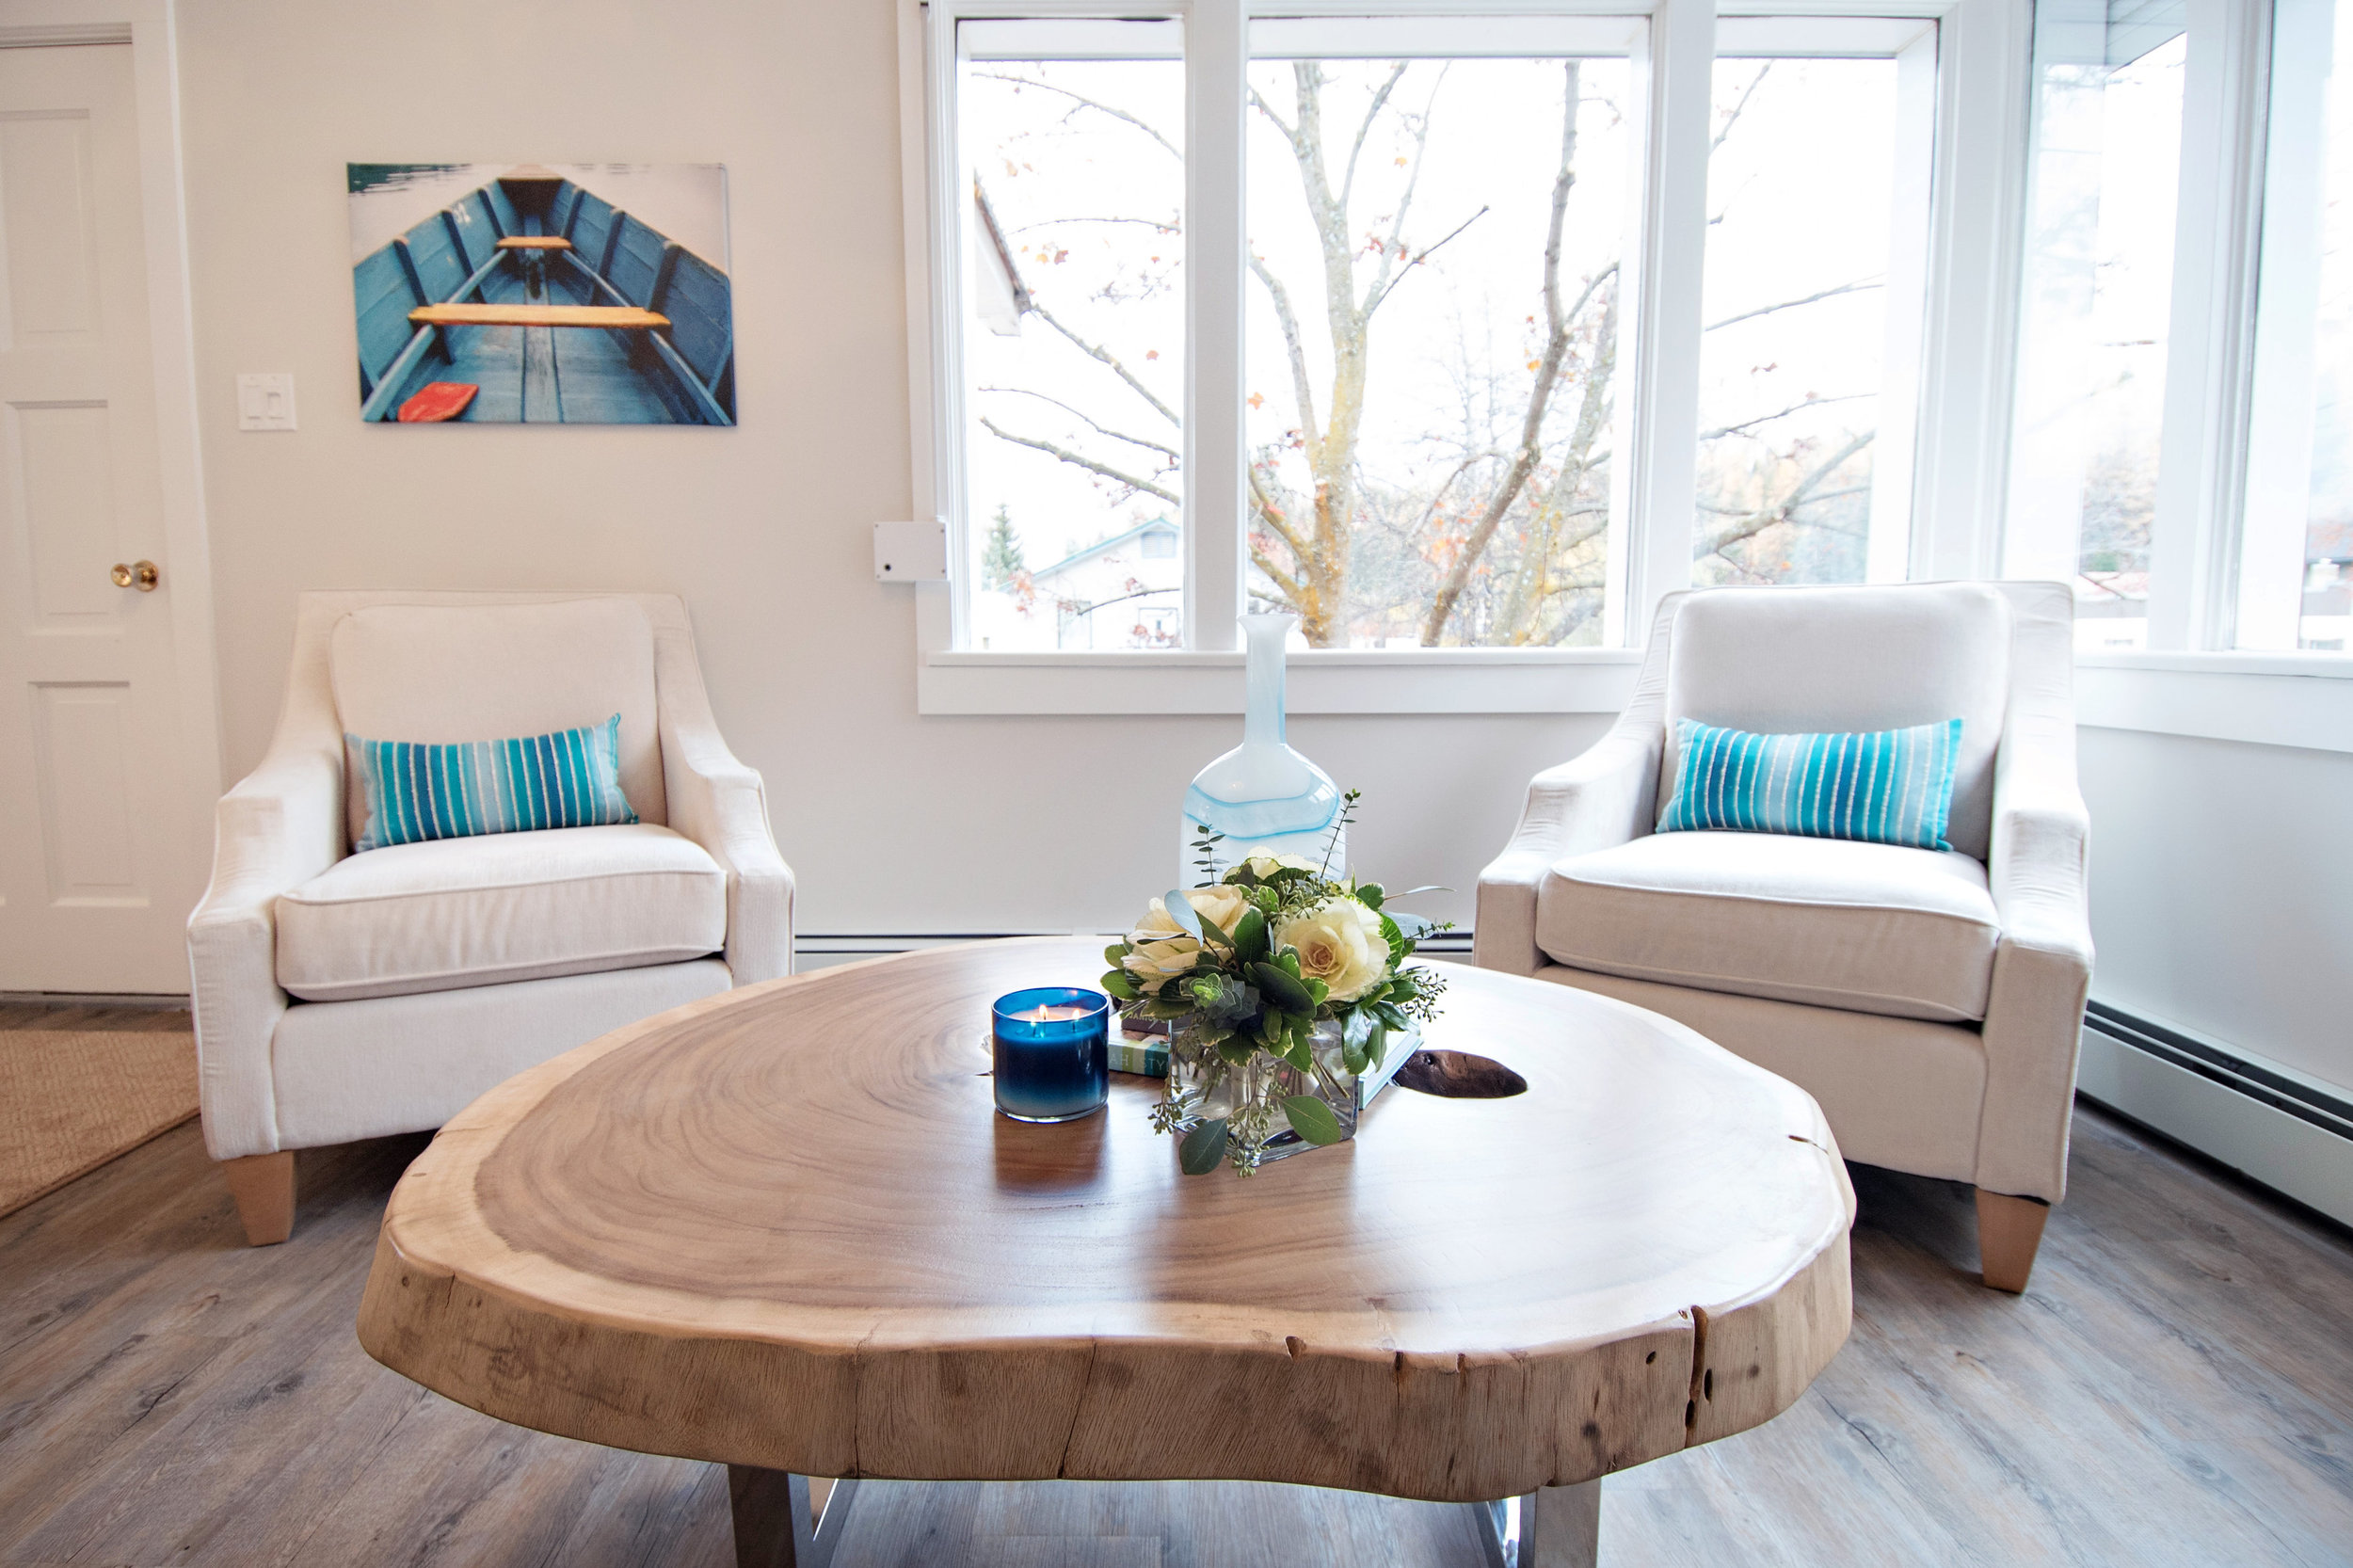 LAZY BOY CHAIRS, WOOD TABLE, LIVE EDGE TABLE, WHITE UPHOLSTERED CHAIRS, INTERIOR DESIGNS BY ADRIENNE, CRANBROOK BC